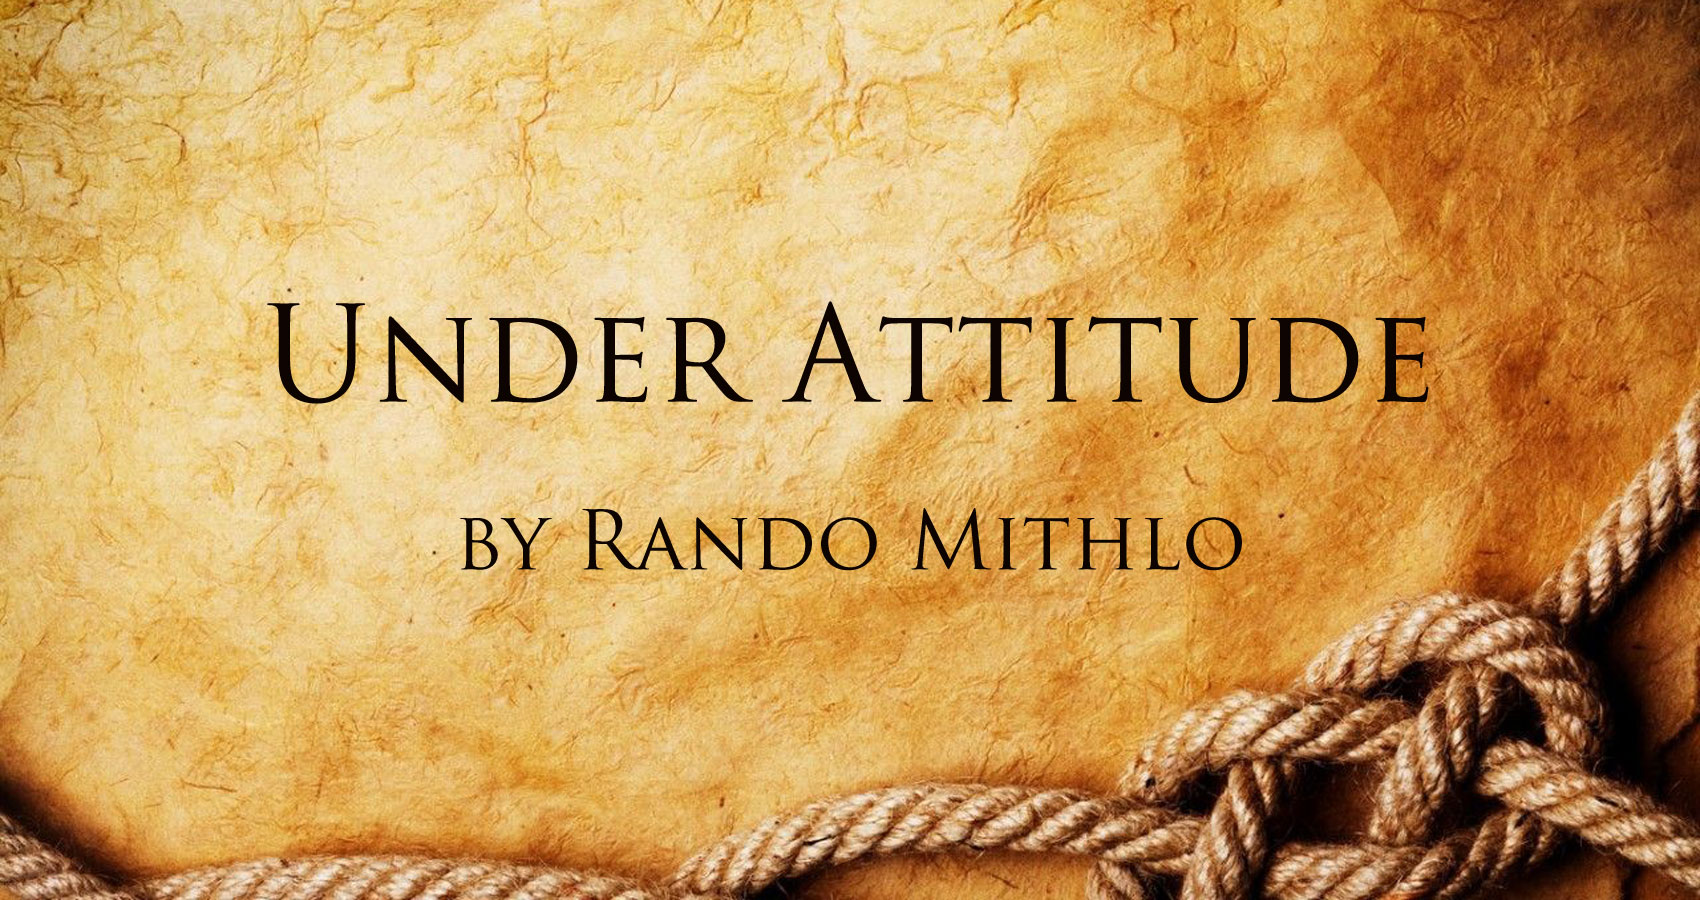 Under Attitude by Rando Mithlo at Spillwords.com